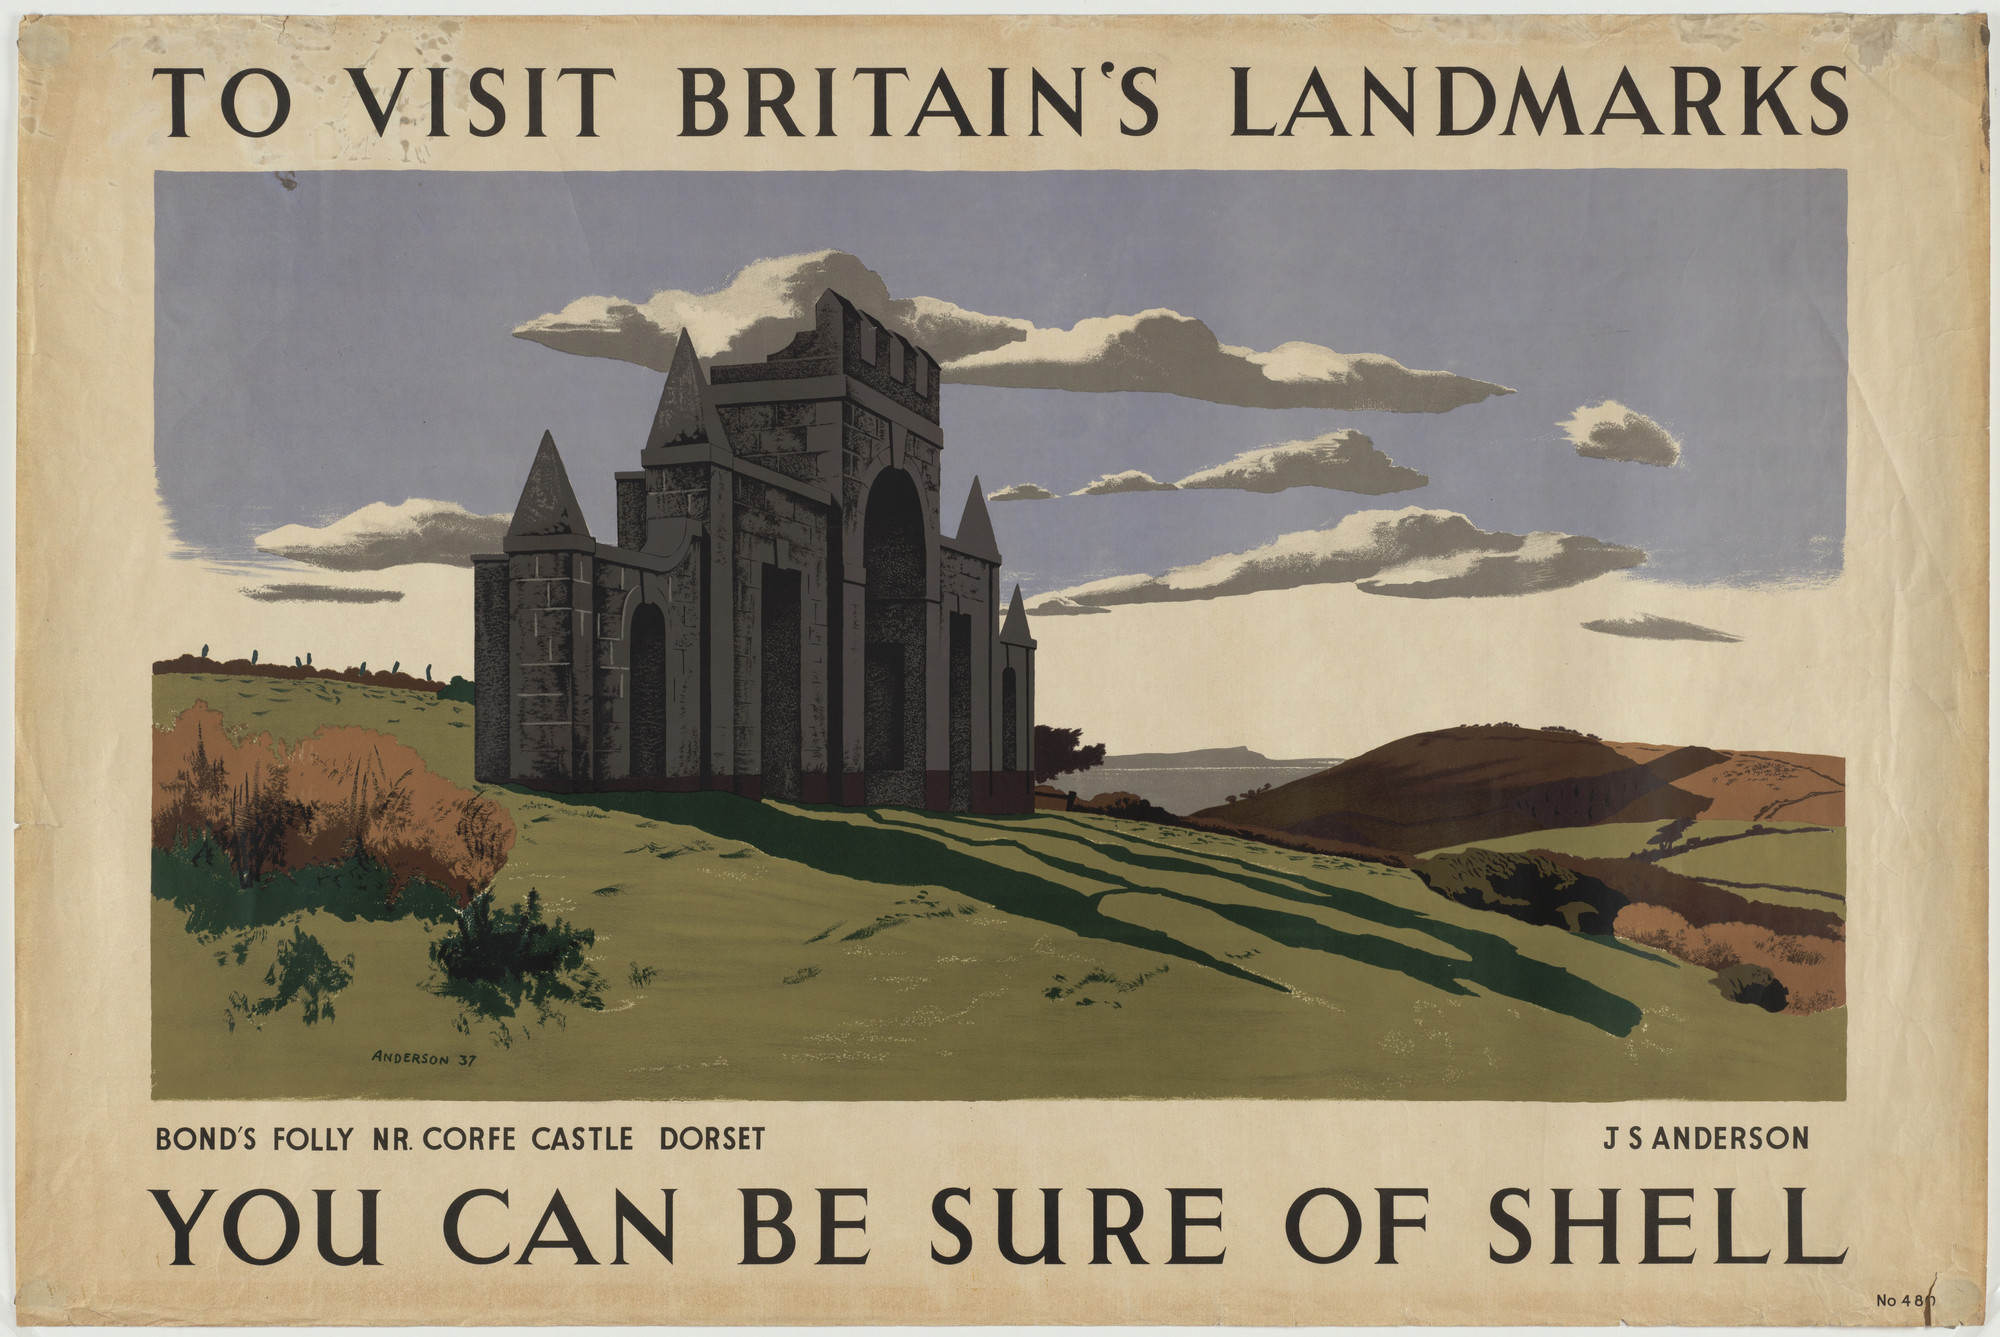 J. S. Anderson. To Visit Britain's Landmarks, You Can Be Sure of Shell. c. 1939-43